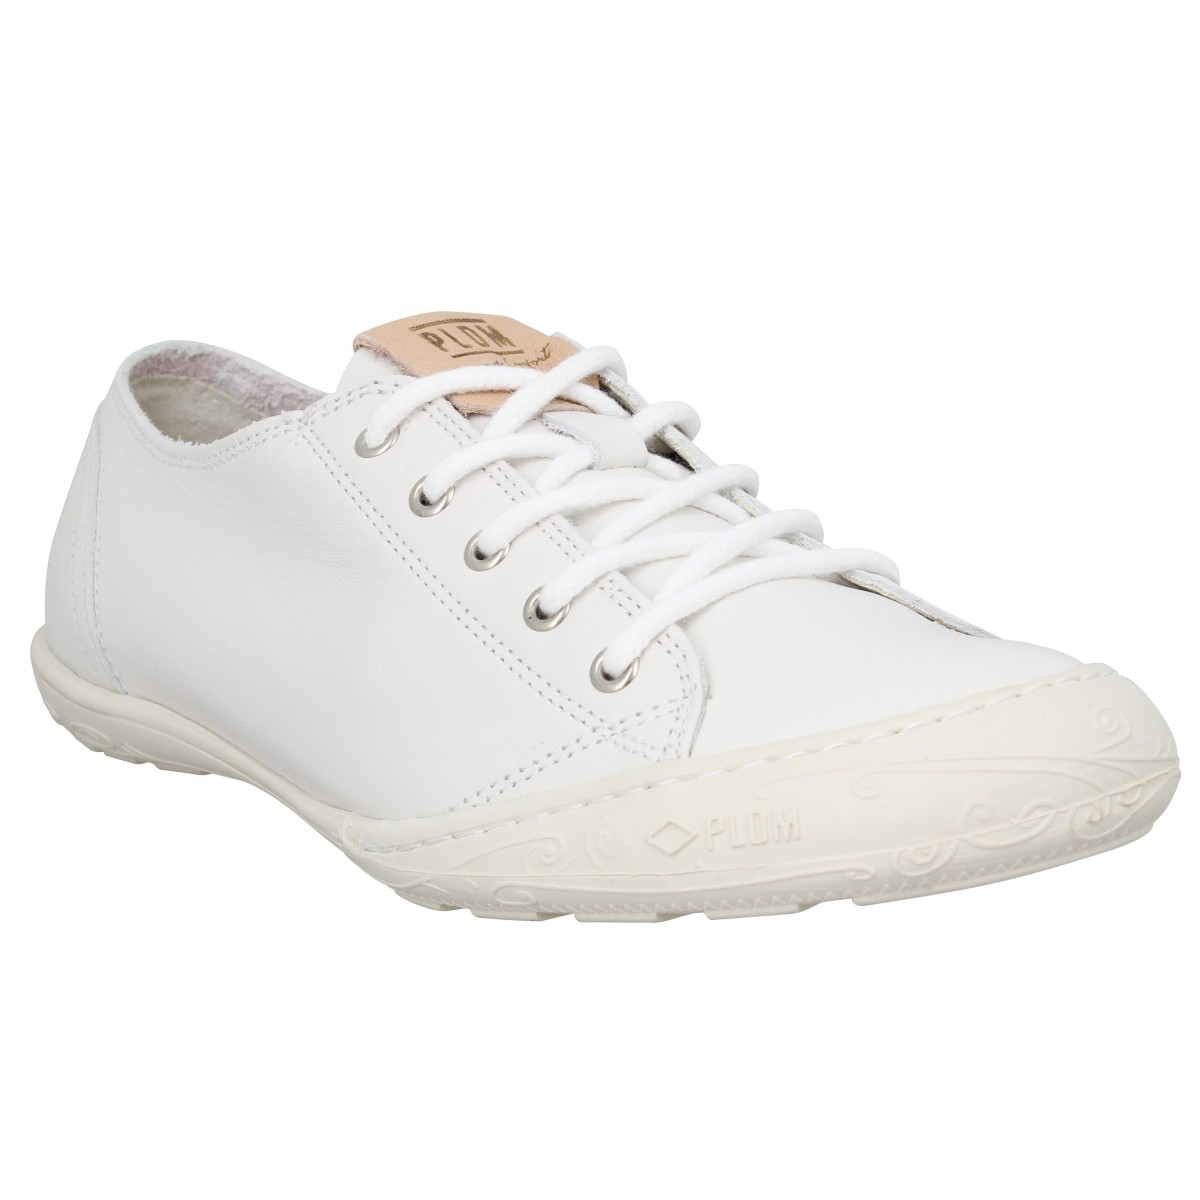 Baskets PLDM by PALLADIUM Game VTO cuir Femme Blanc